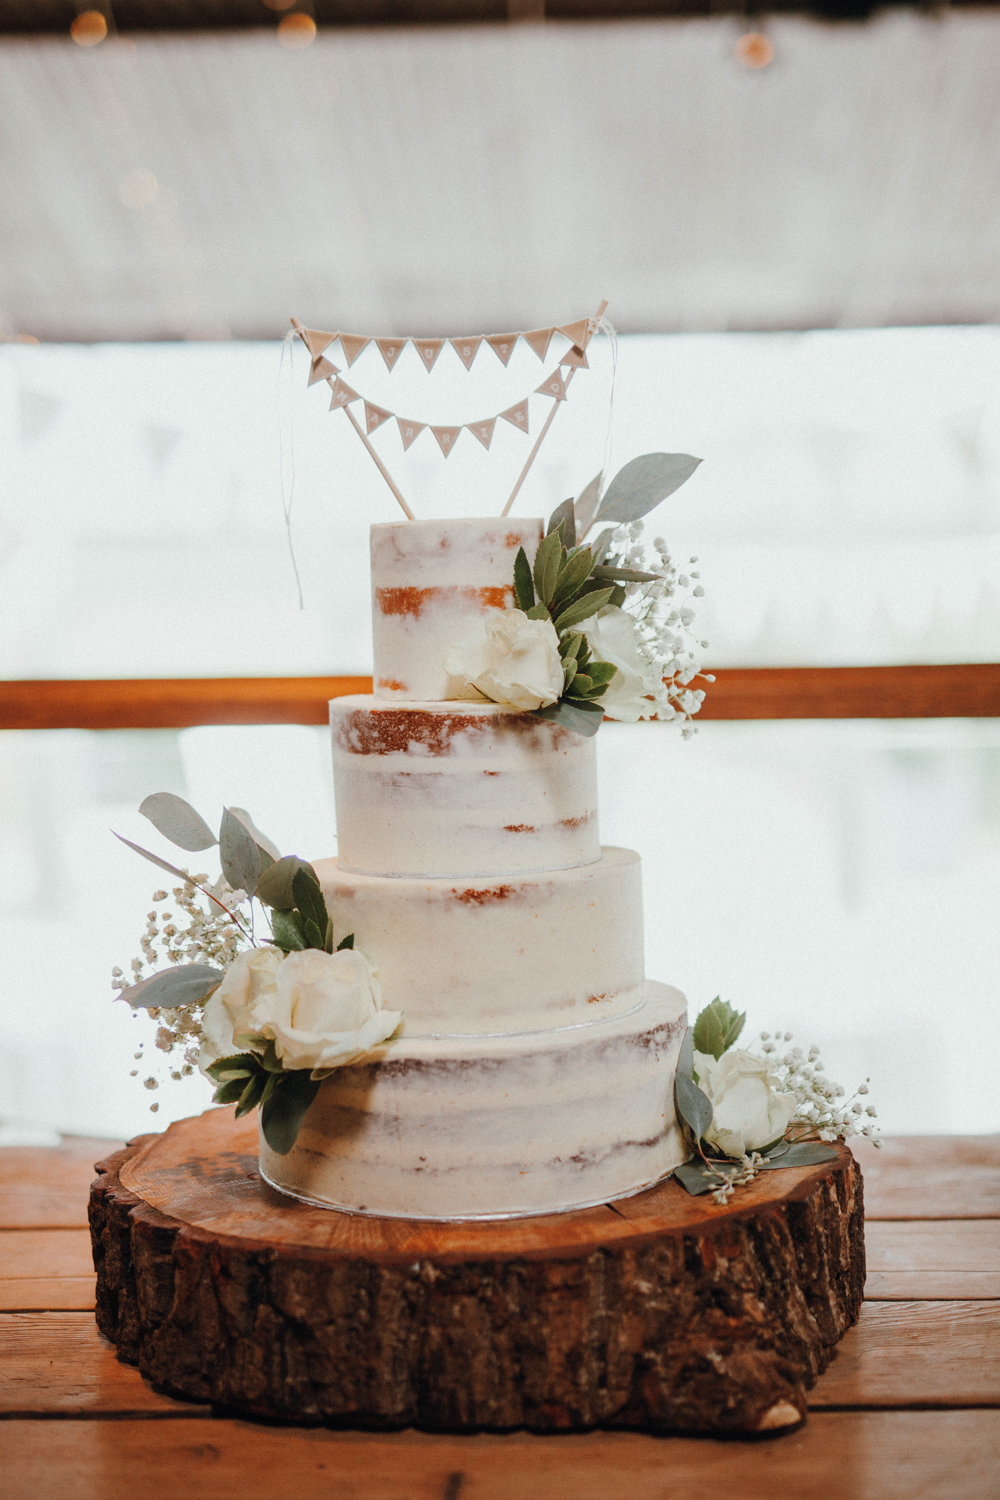 The wedding cake was a naked one, topped with fresh blooms and a bunting topper